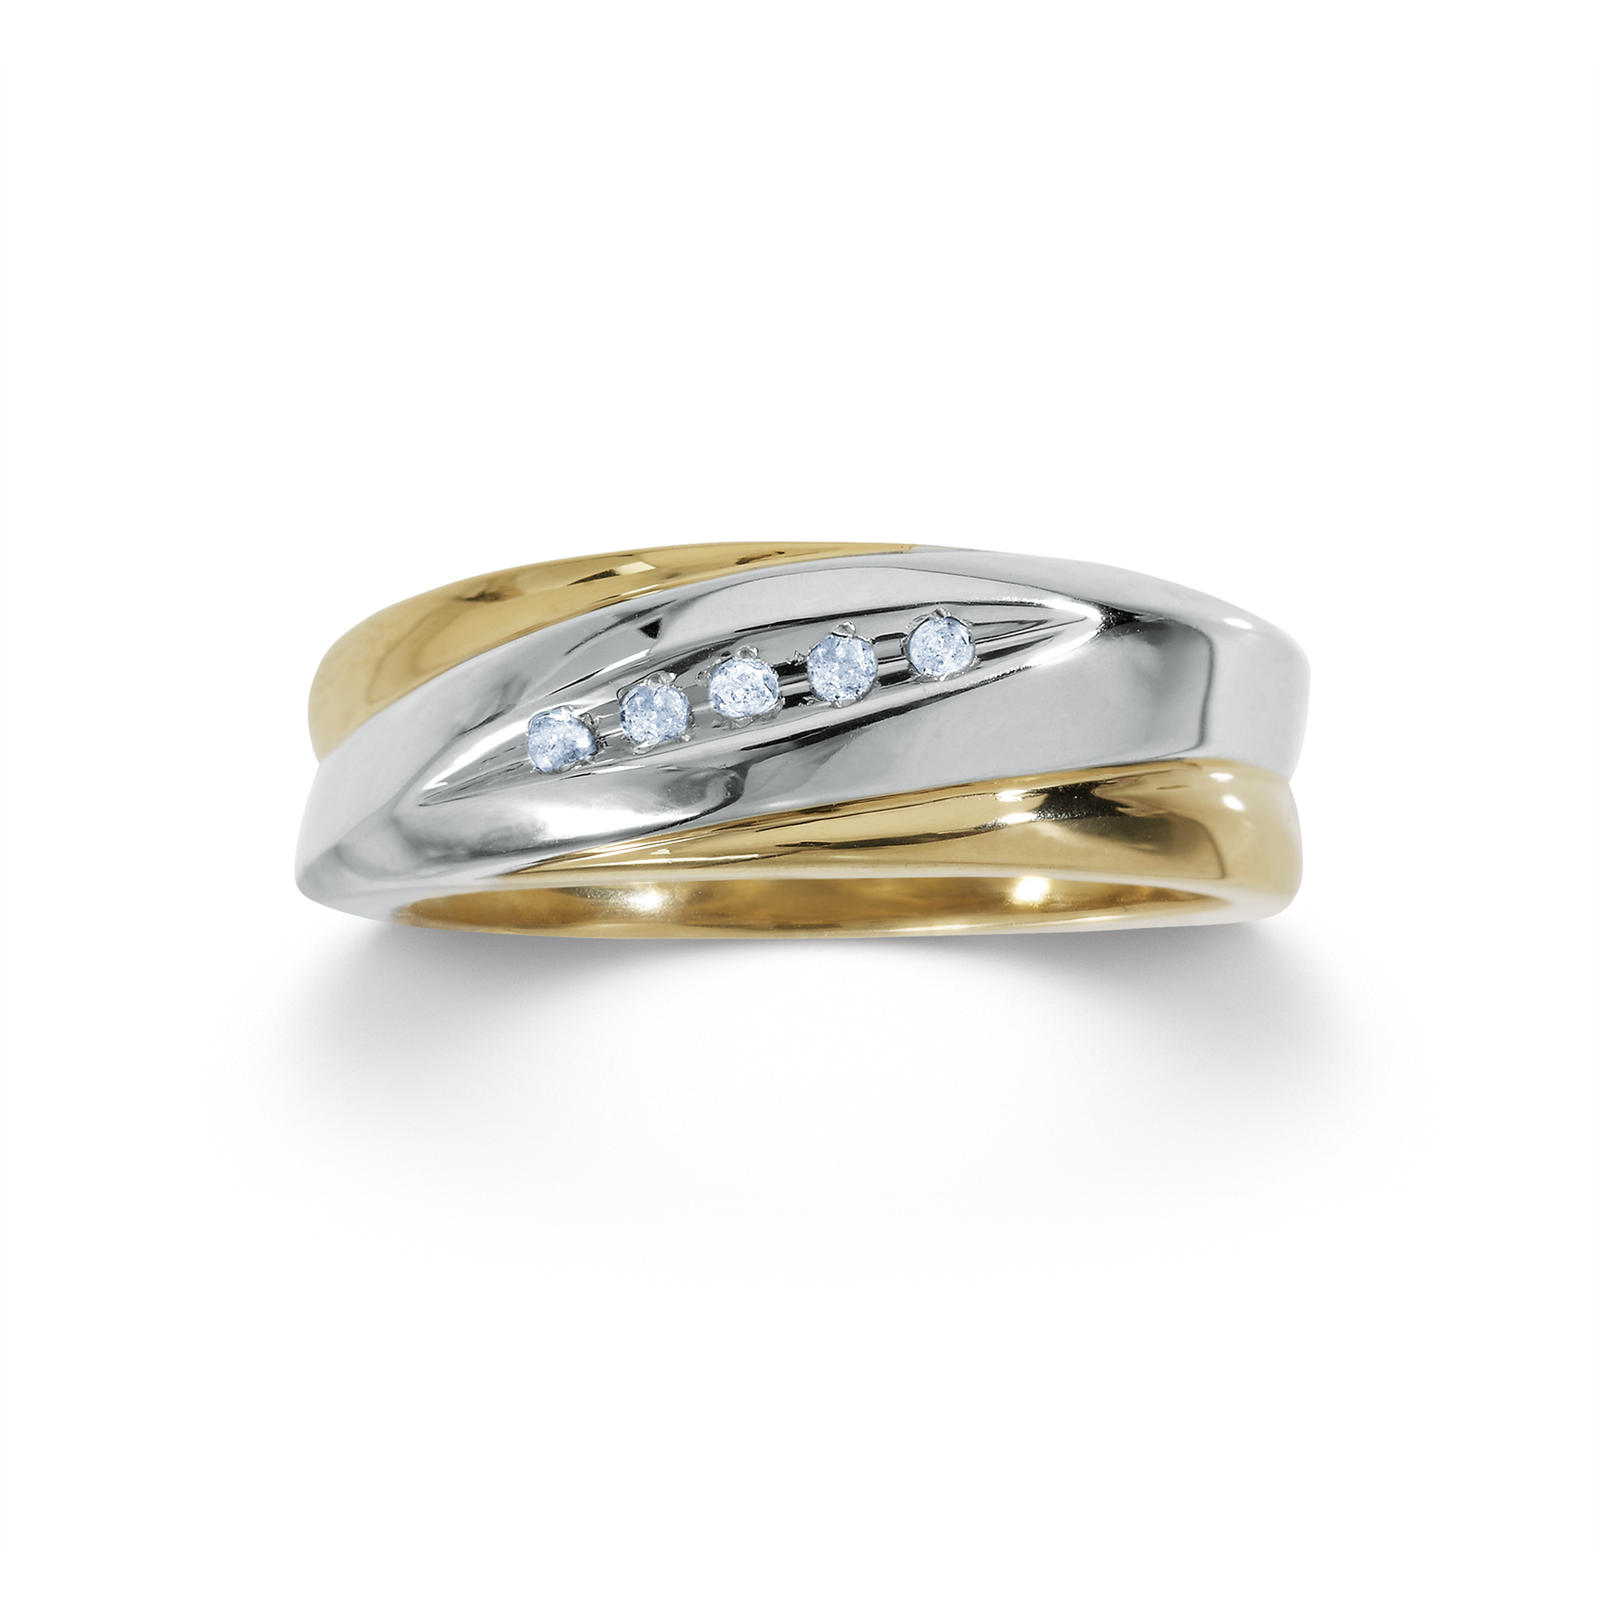 18K Gold Over Sterling Silver Mens Wedding Band With